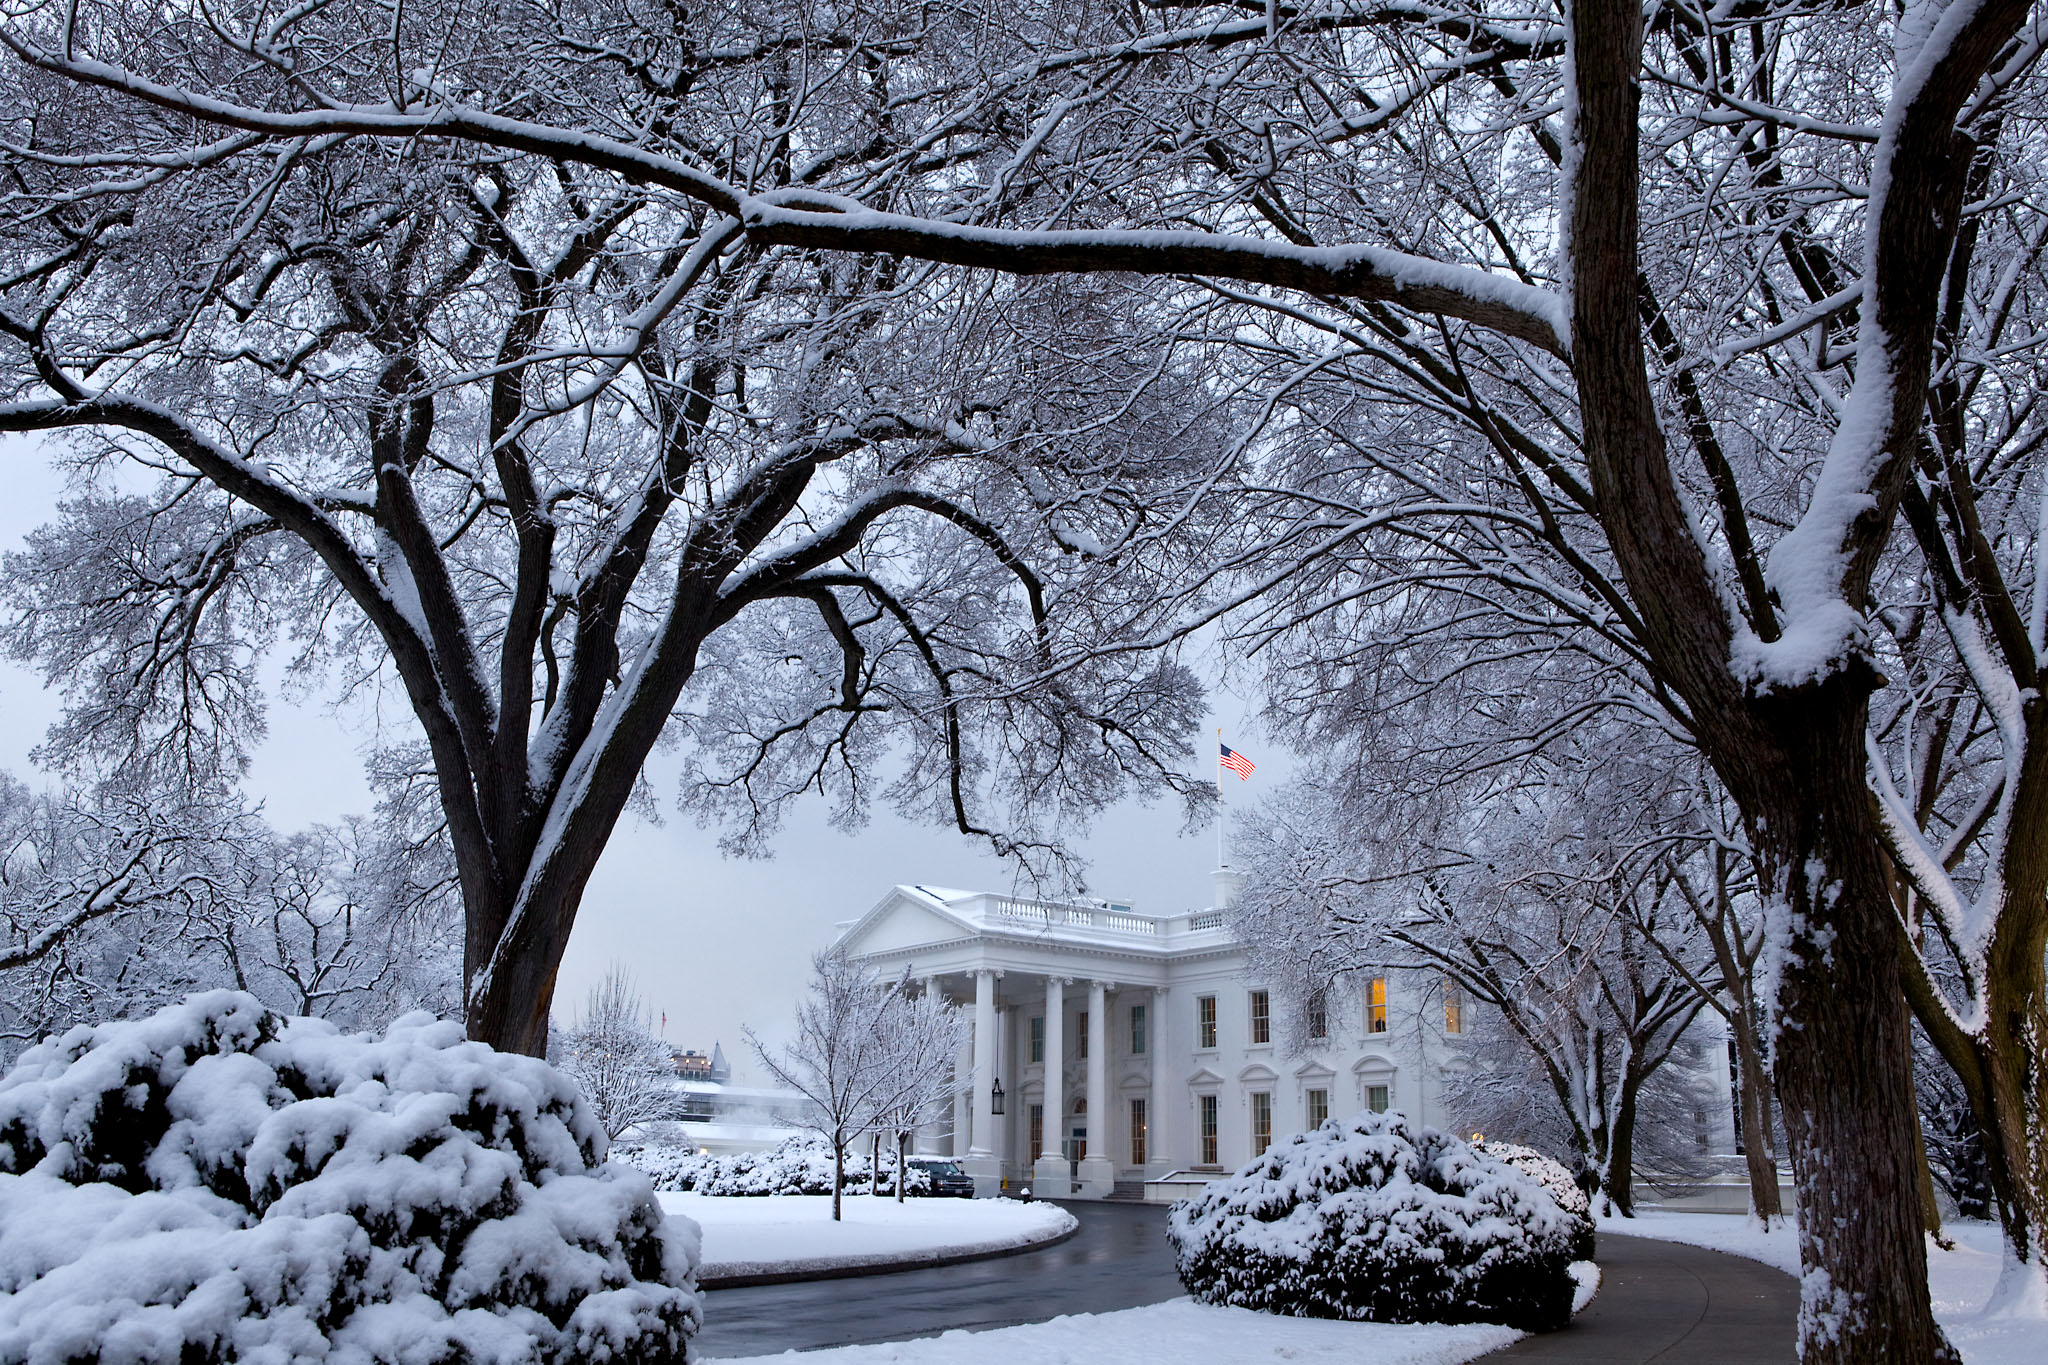 The White House in Snow, February 2009